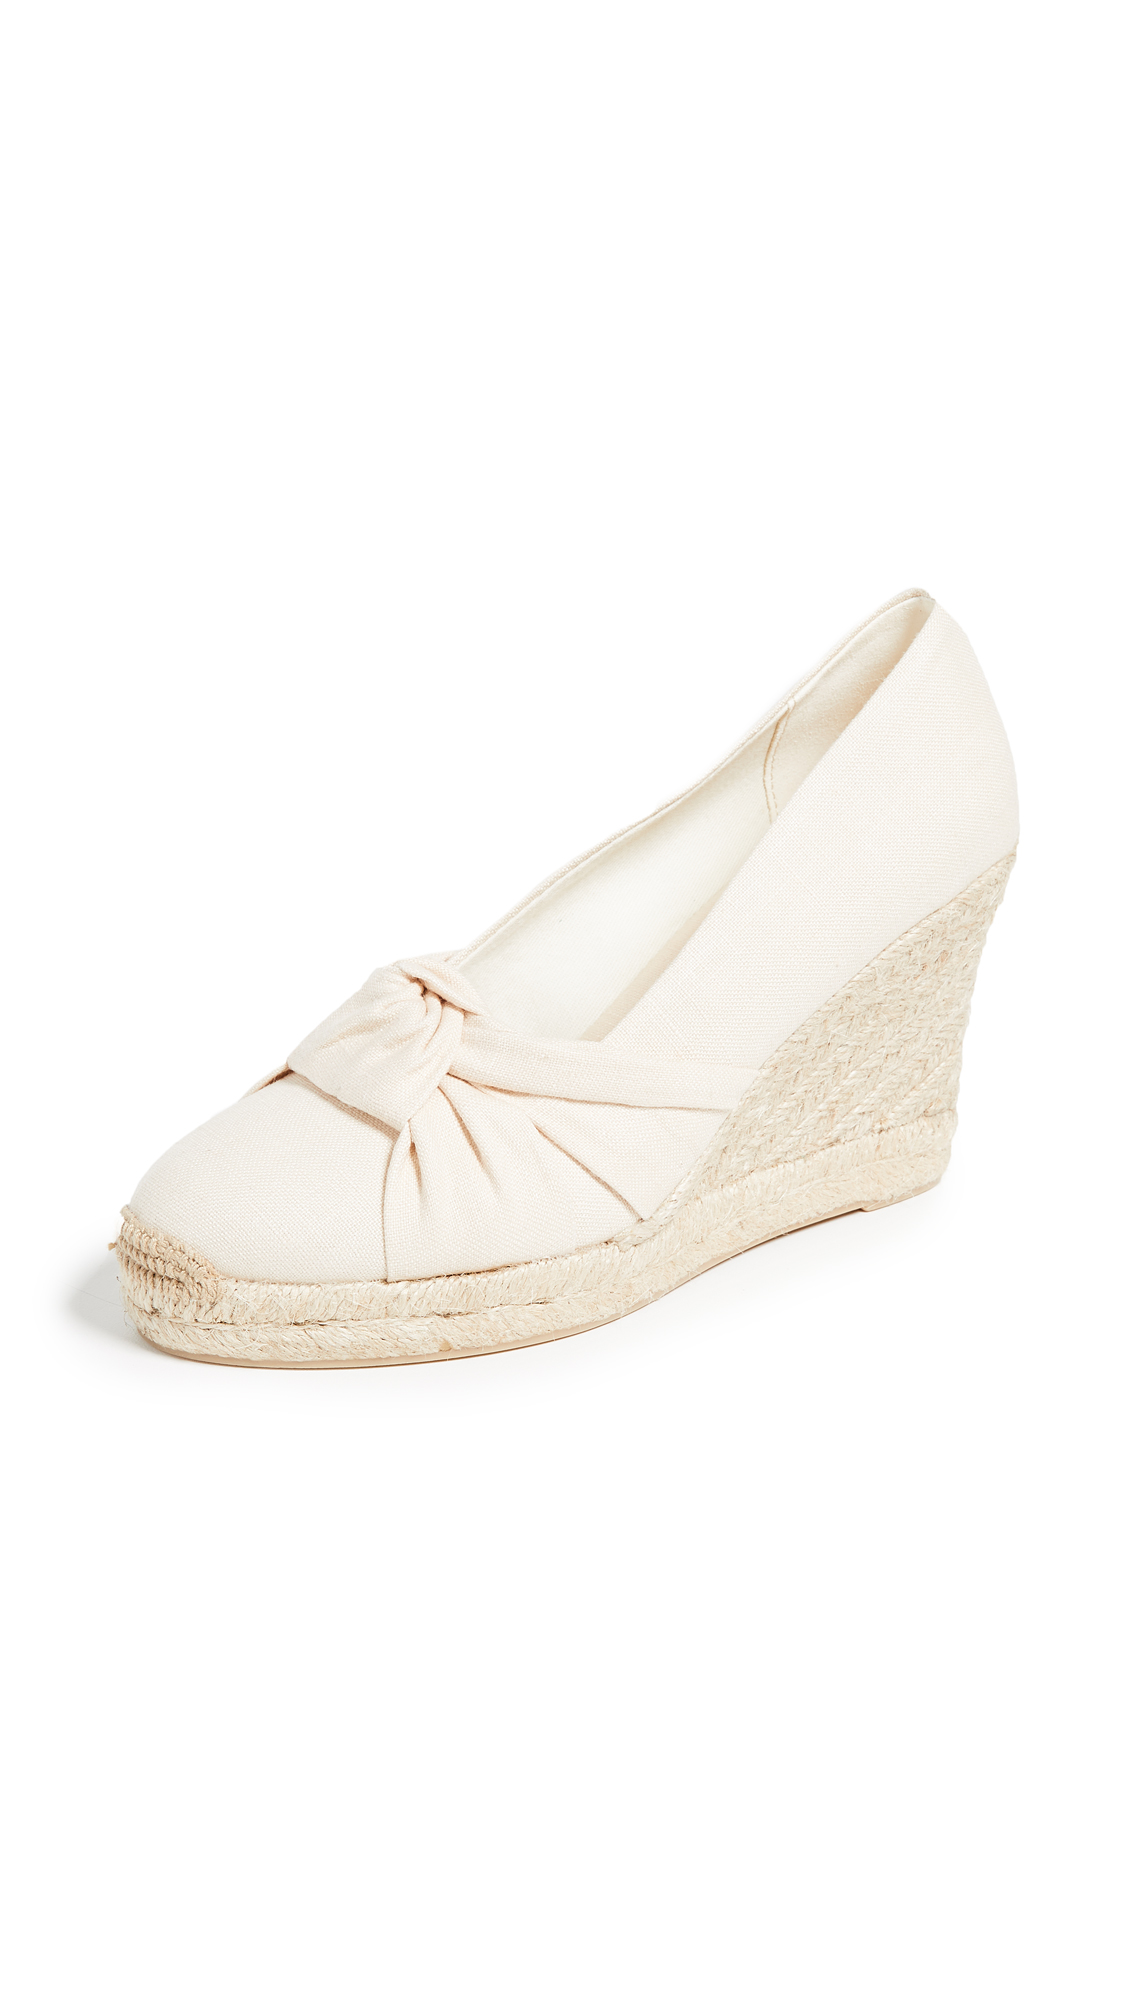 Soludos Knotted Tall Wedge Espadrilles - Blush